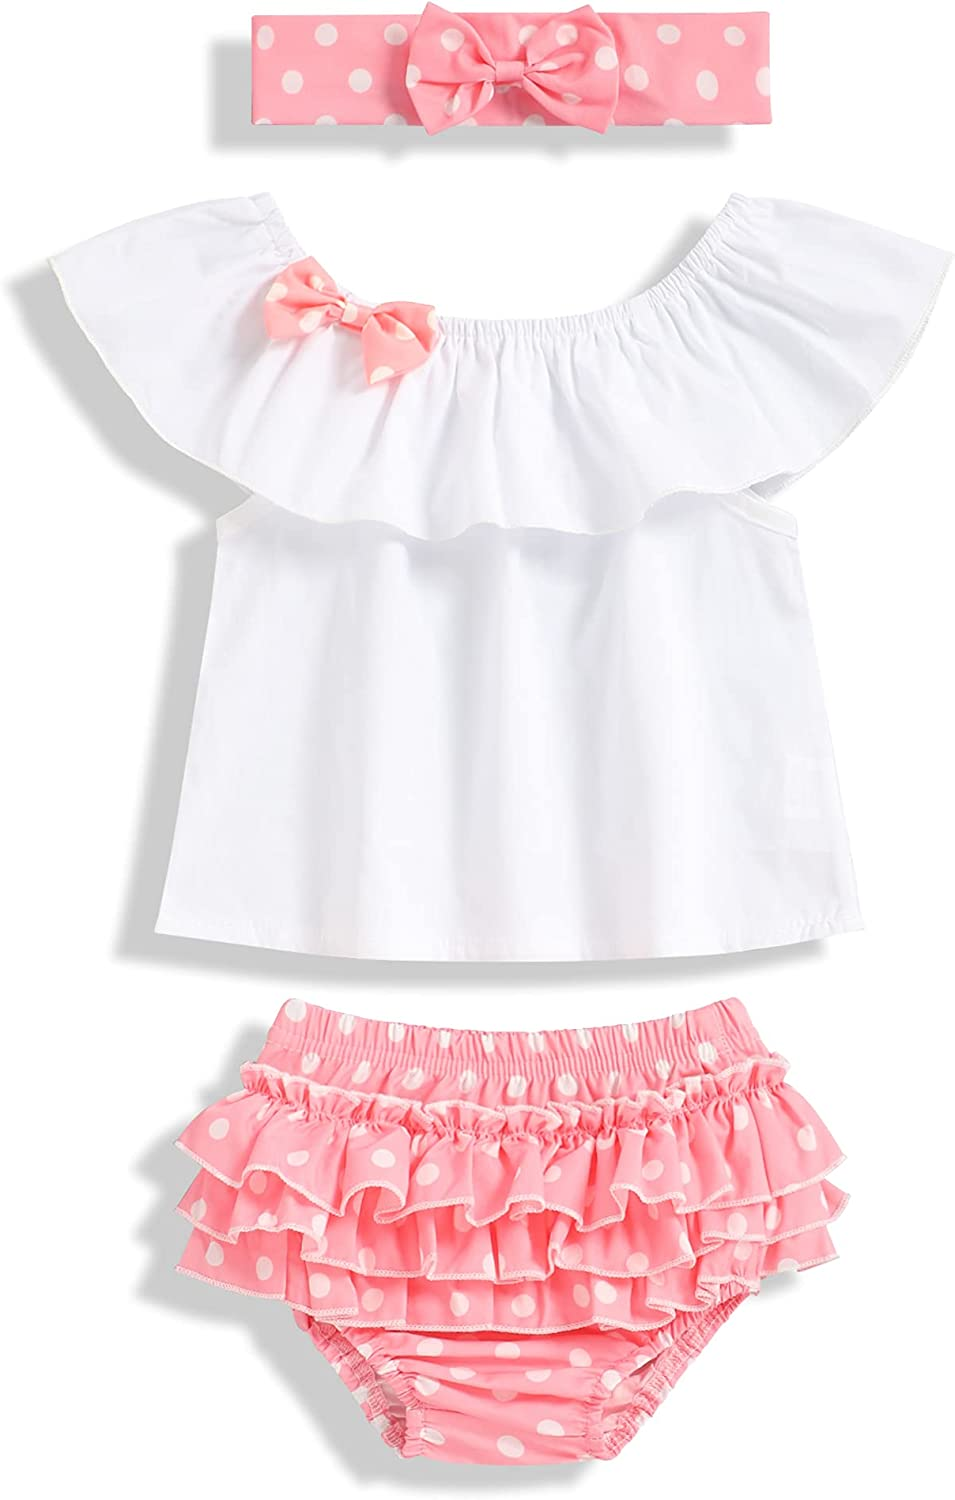 Newborn Baby Girl Clothes Red Dot Romper Ju Ruffle Shipping included Cute Max 41% OFF Backless